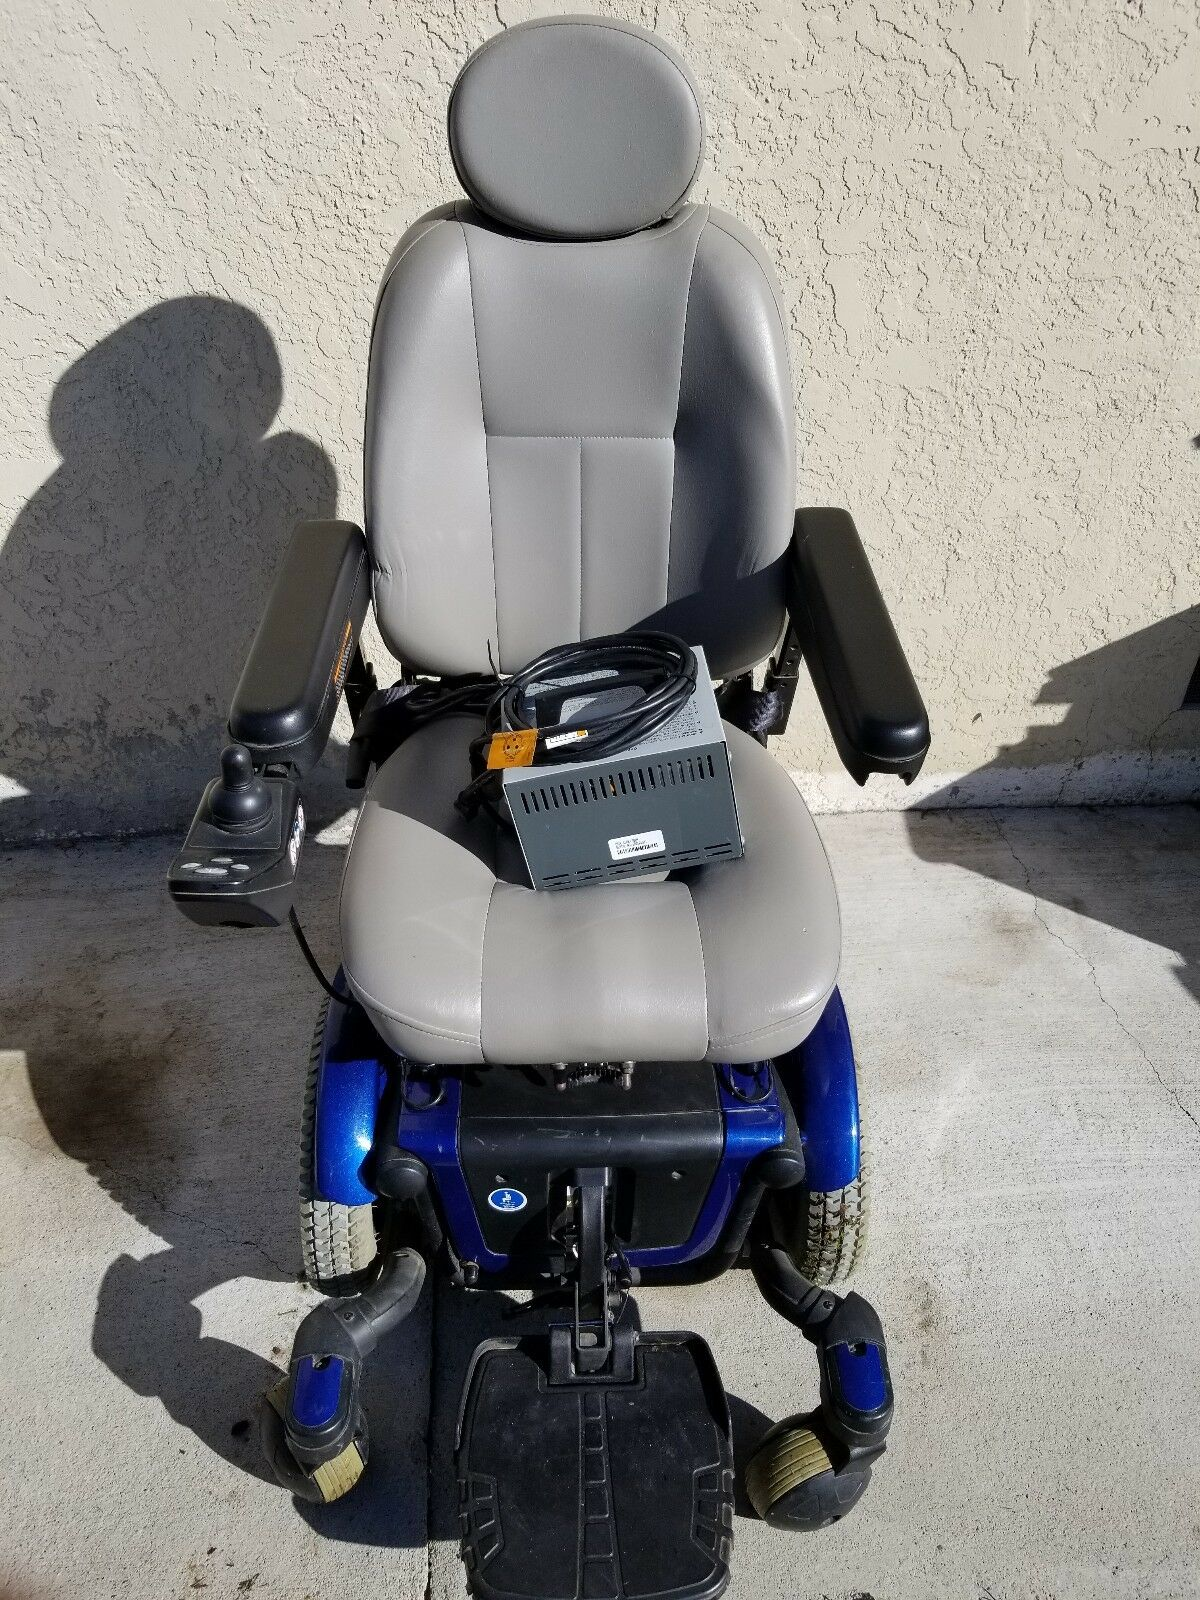 Pride mobility products QUANTUM 600 Power Wheelchair synergy shape